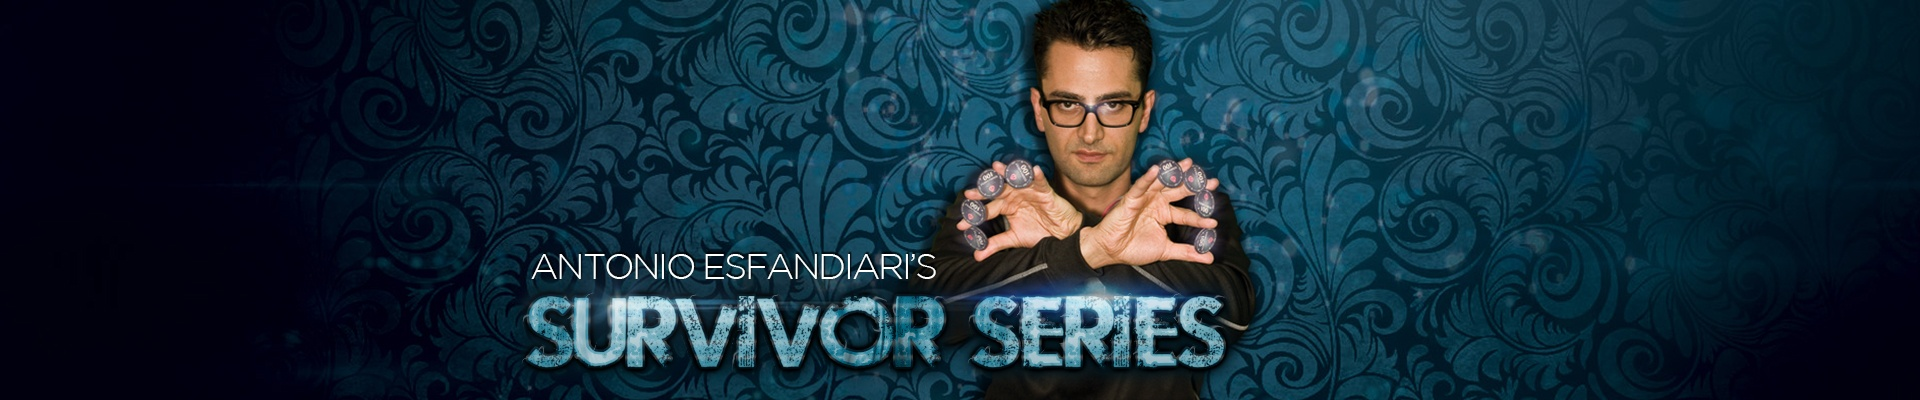 Antonio Esfandiari Survivor Series 2014